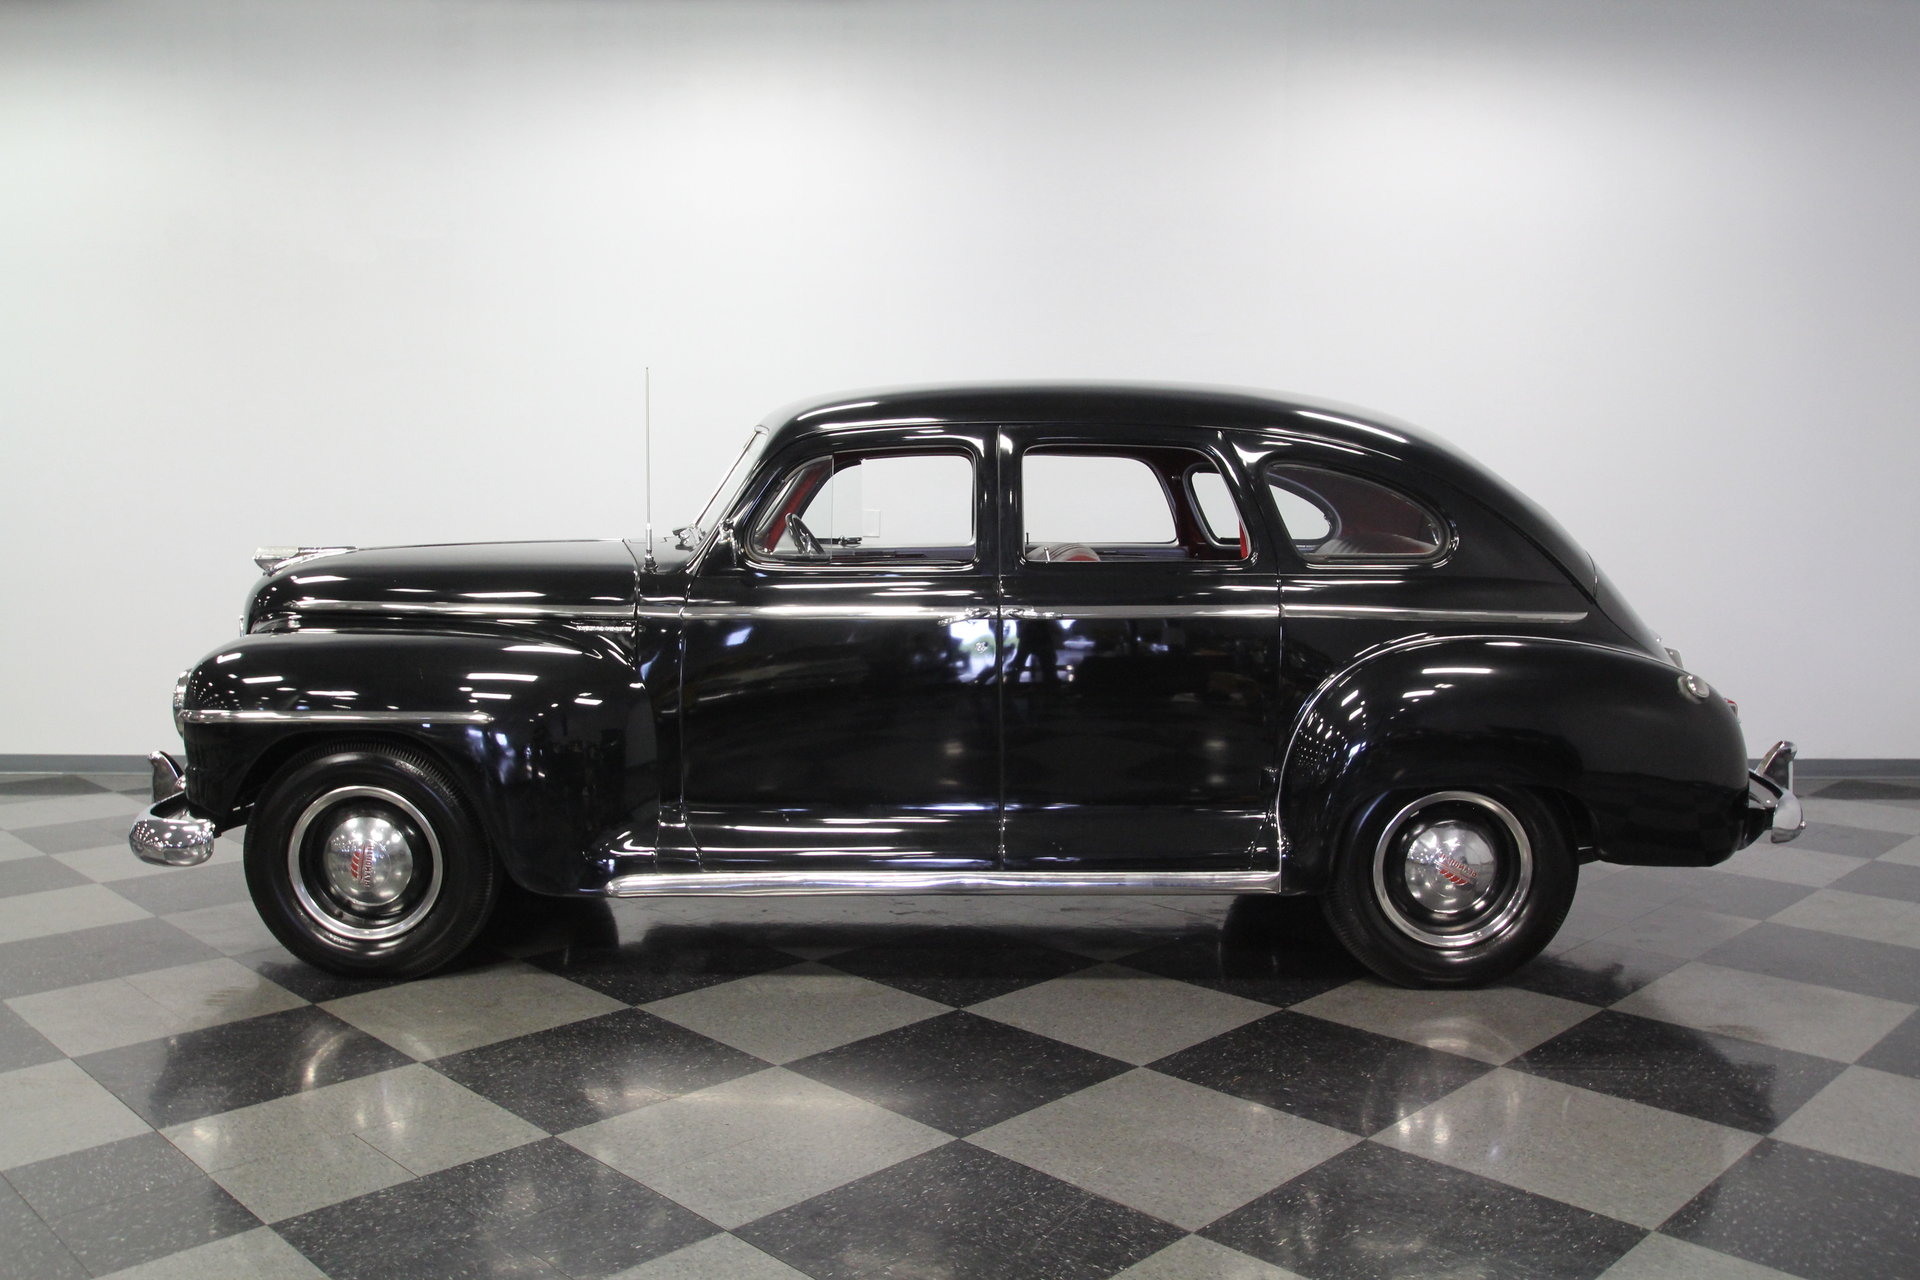 1947 Plymouth Special Deluxe Streetside Classics The Nations 1941 4 Door Show More Photos